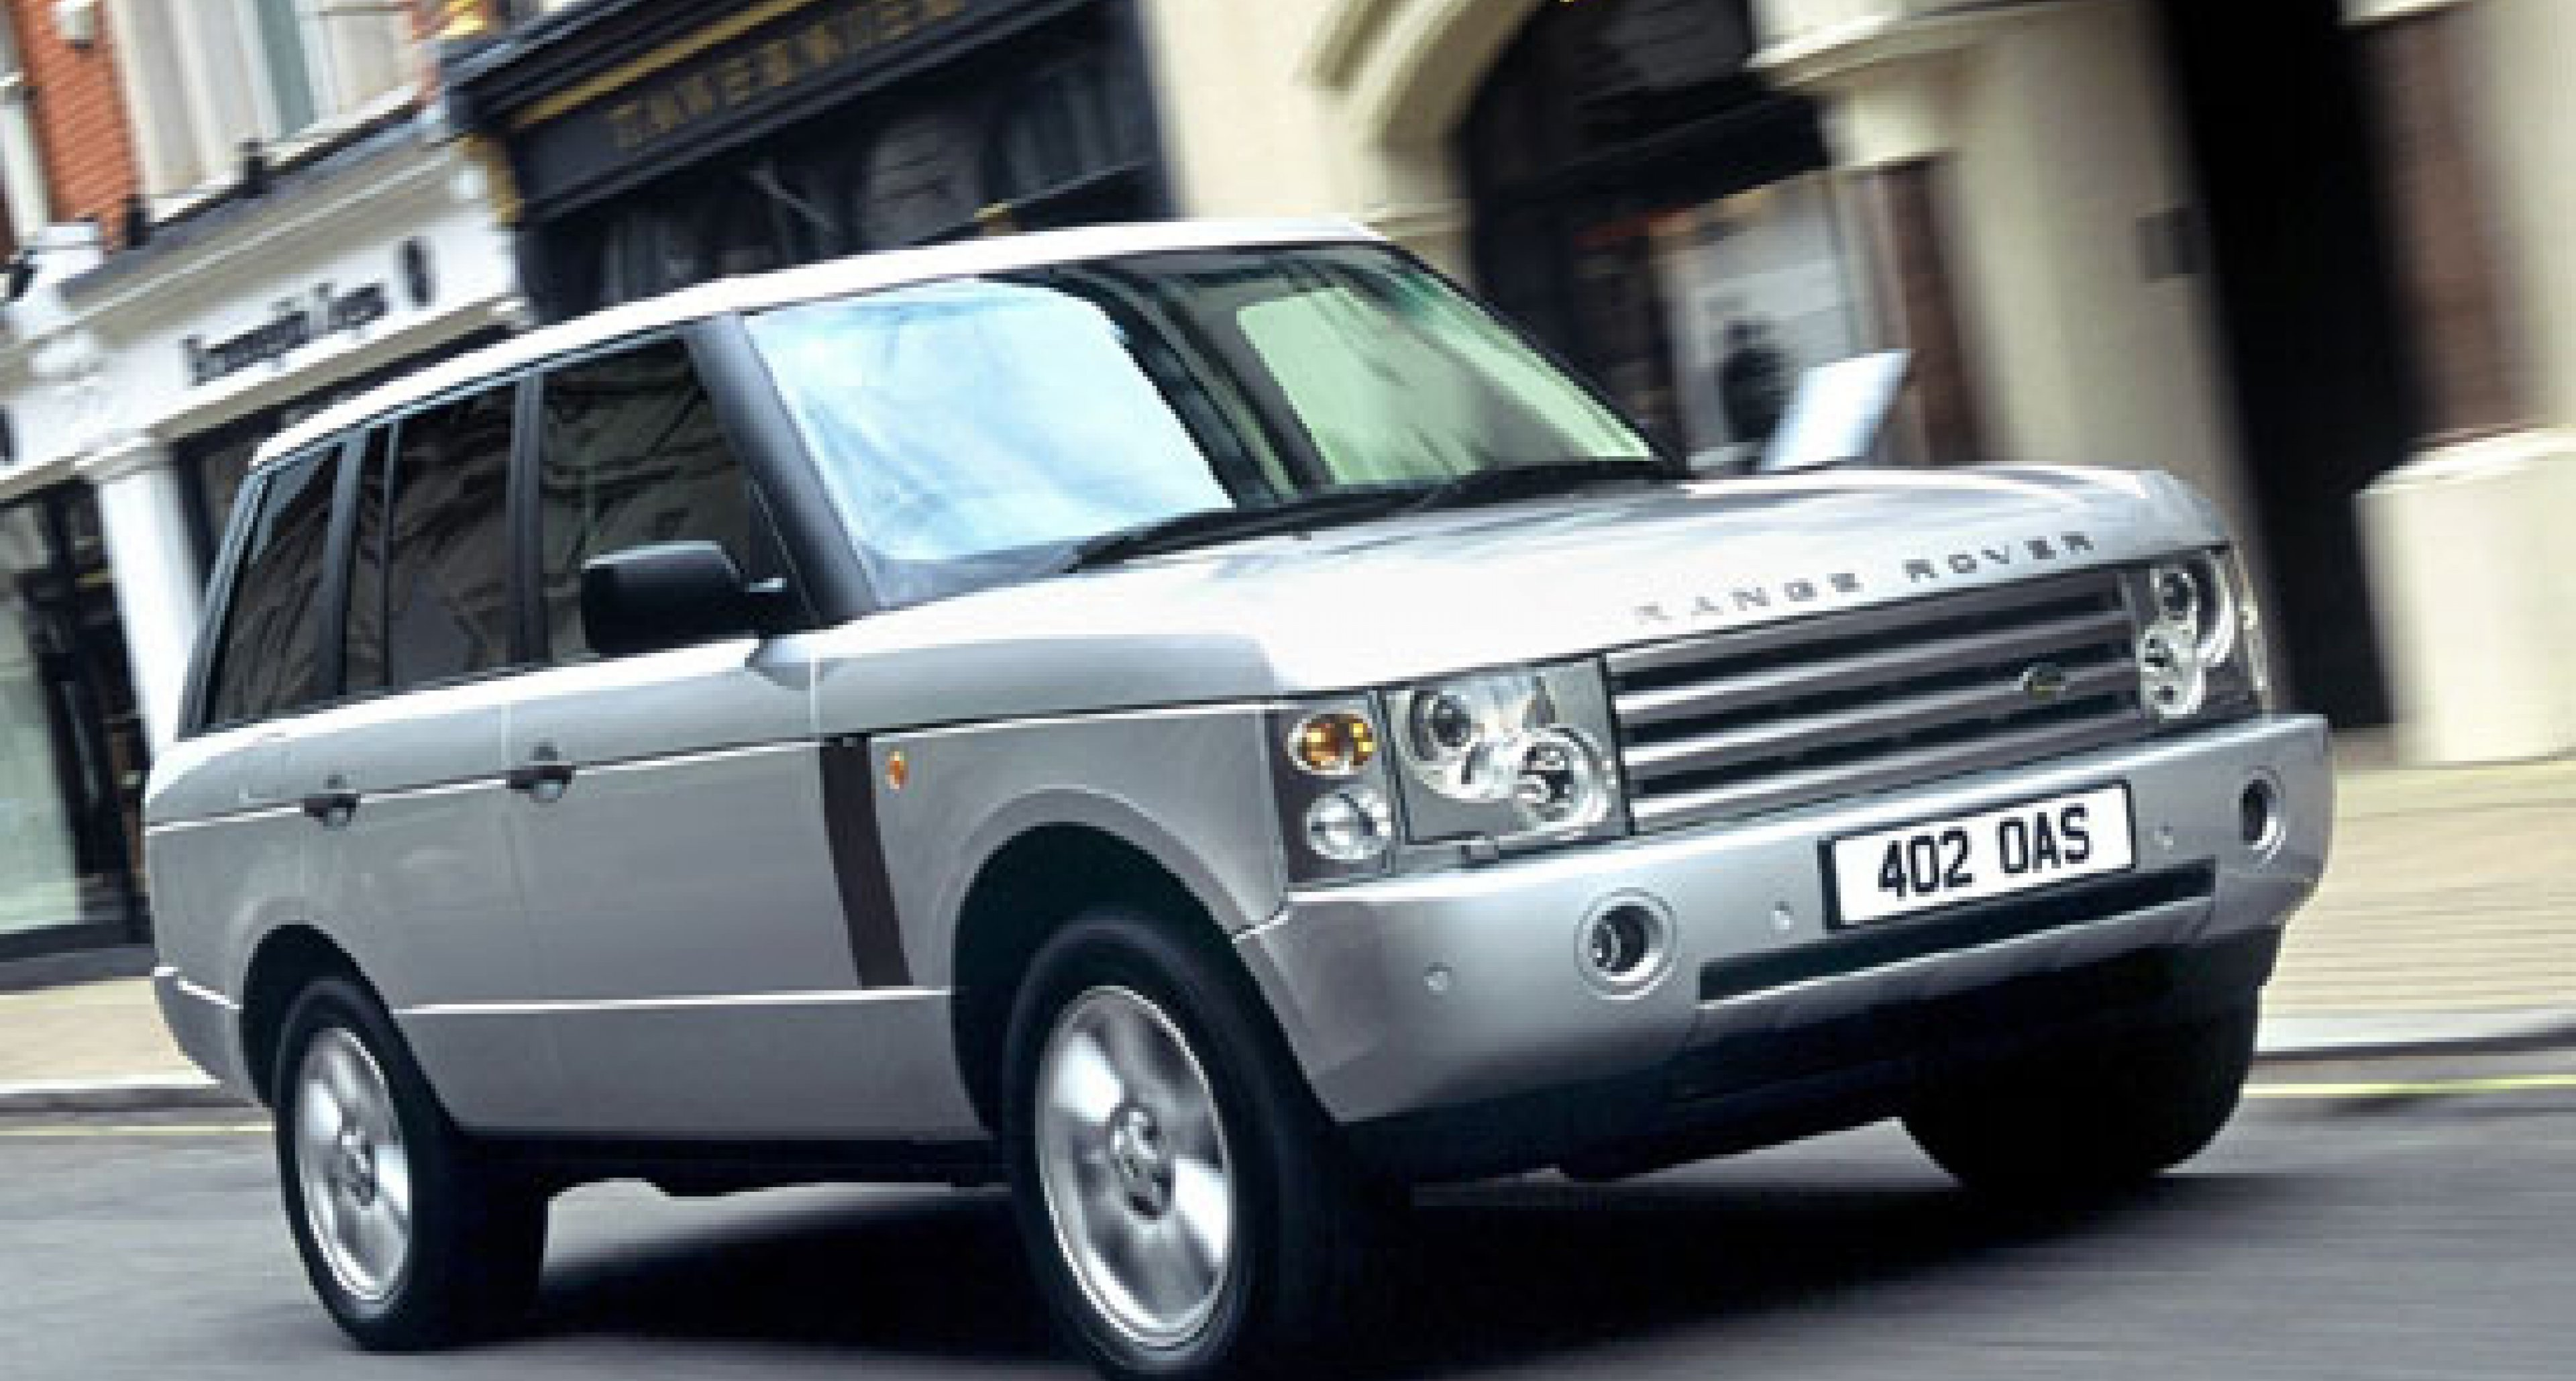 New Range Rover 'Autobiography' limited edition in UK